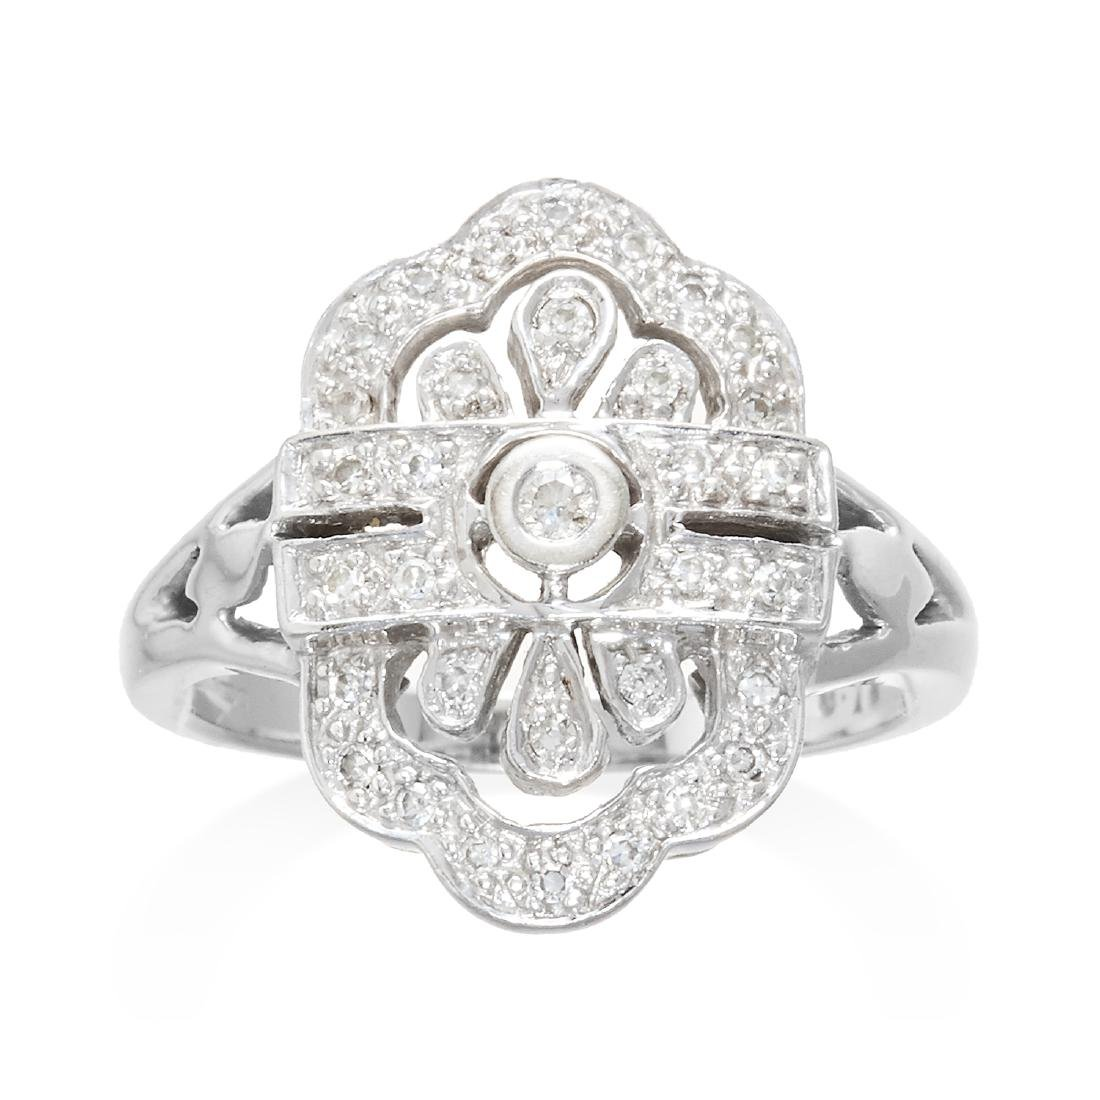 A DIAMOND DRESS RING in 9ct white gold, designed in Art